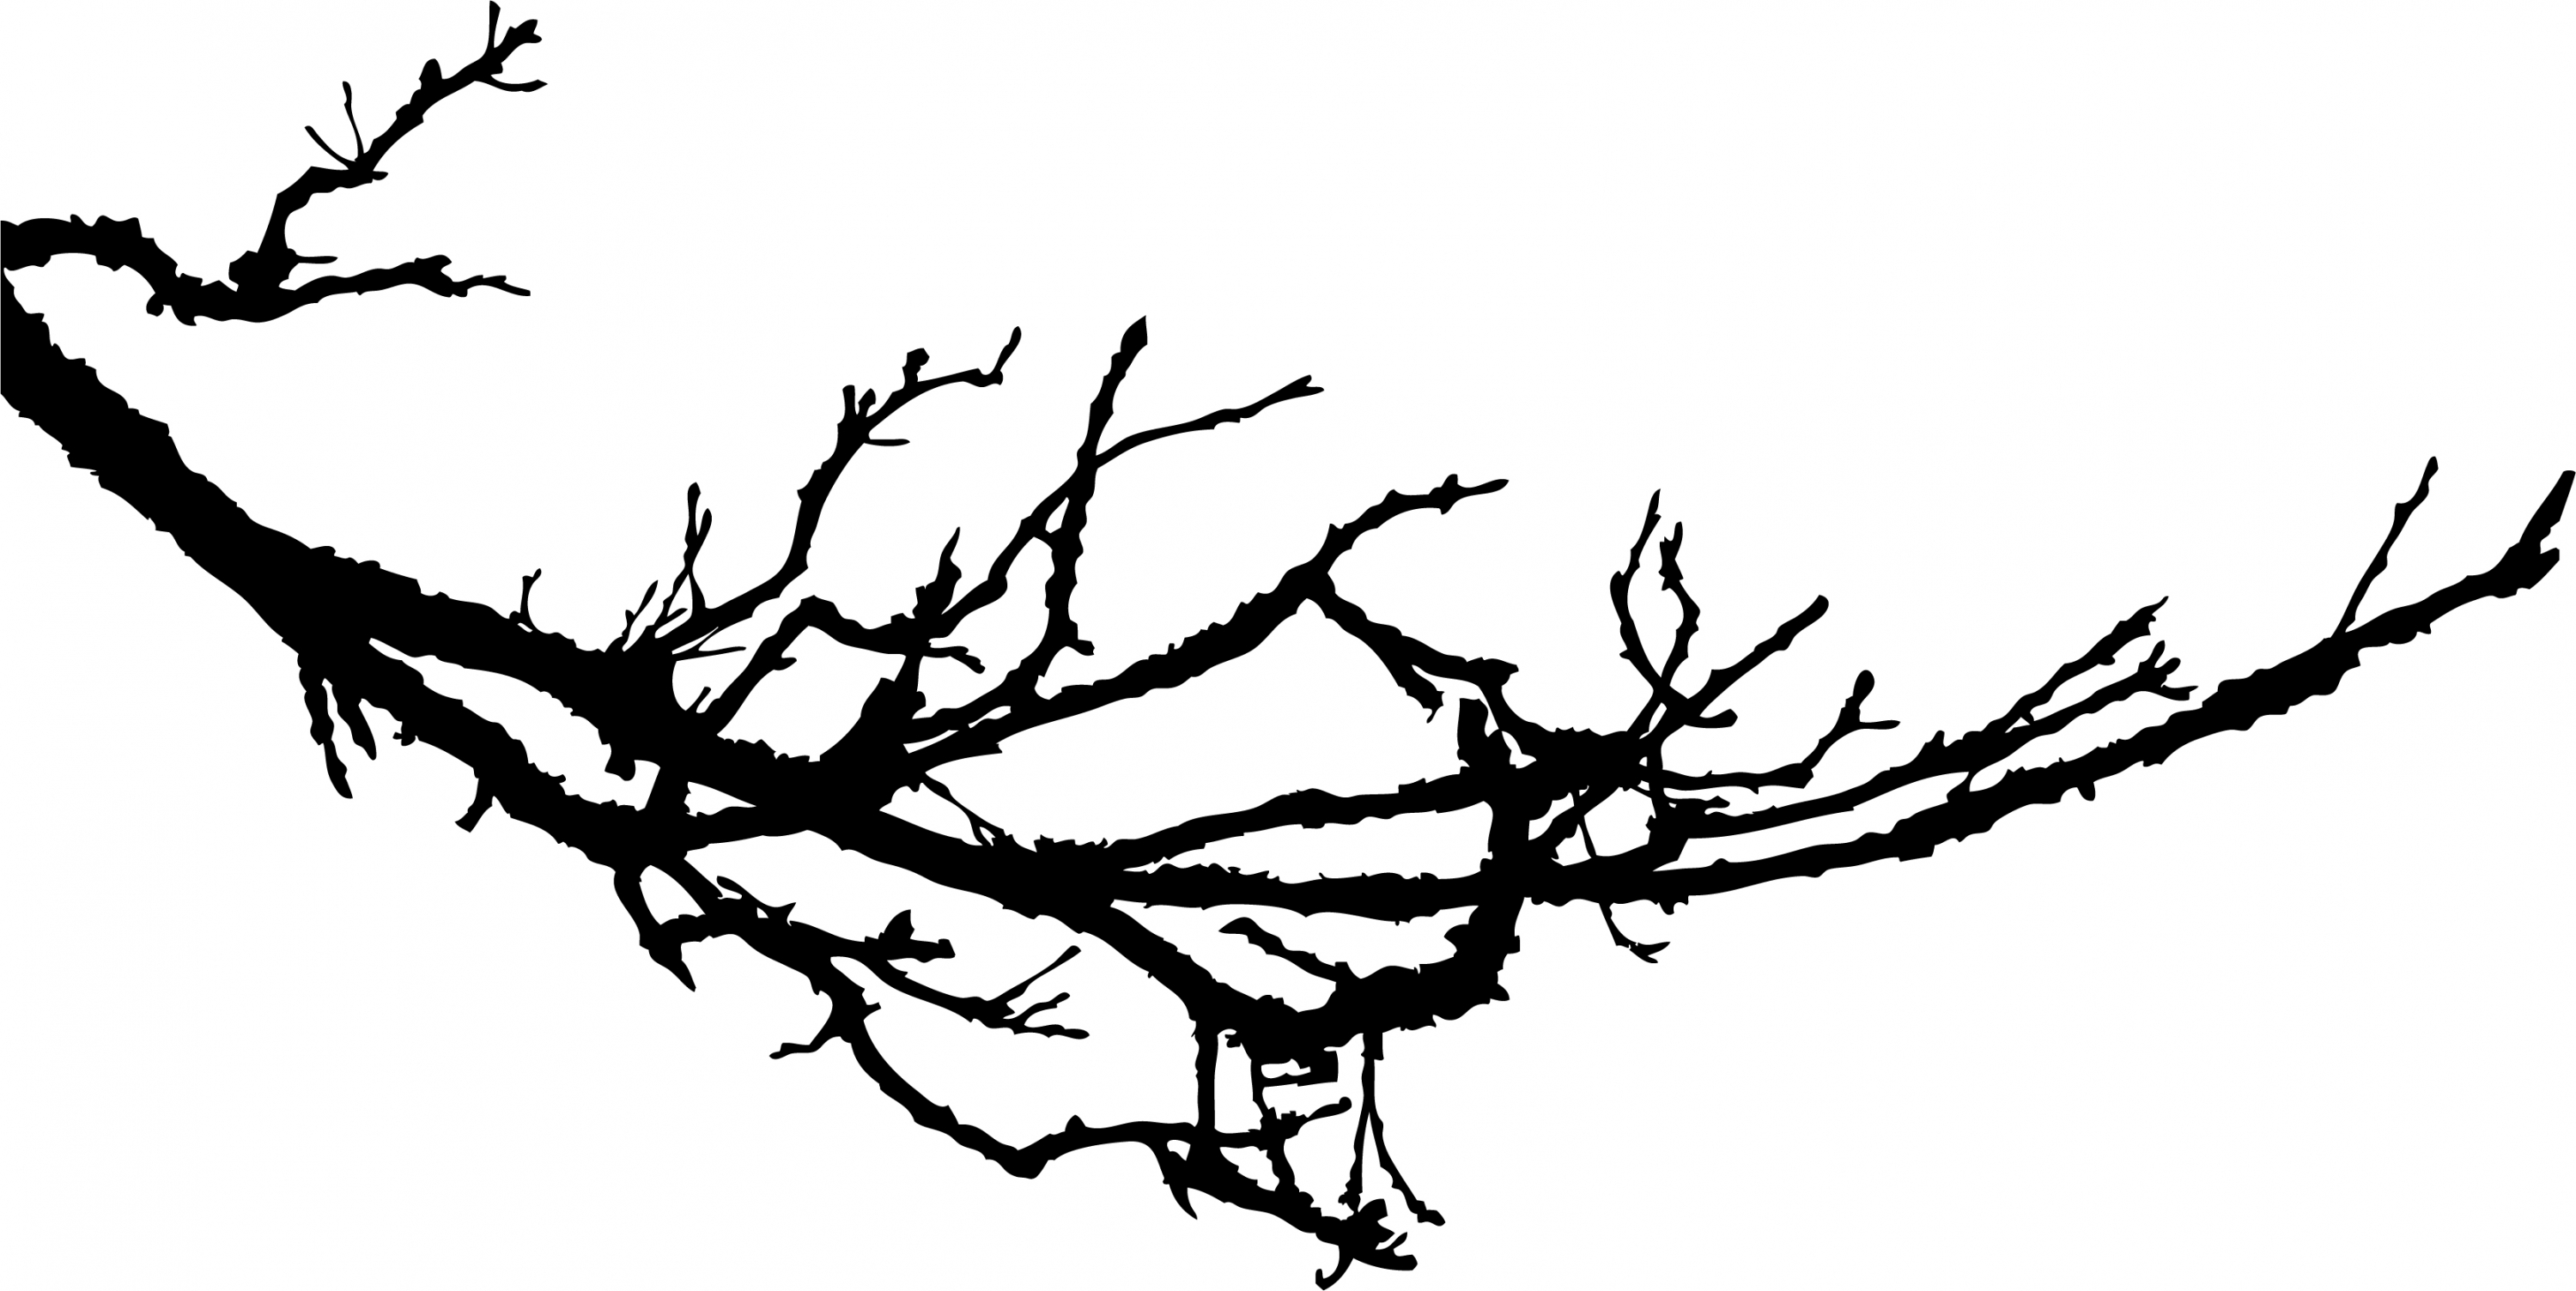 tree branch silhouette 12 tree branch silhouette png transparent vol 3 silhouette tree branch